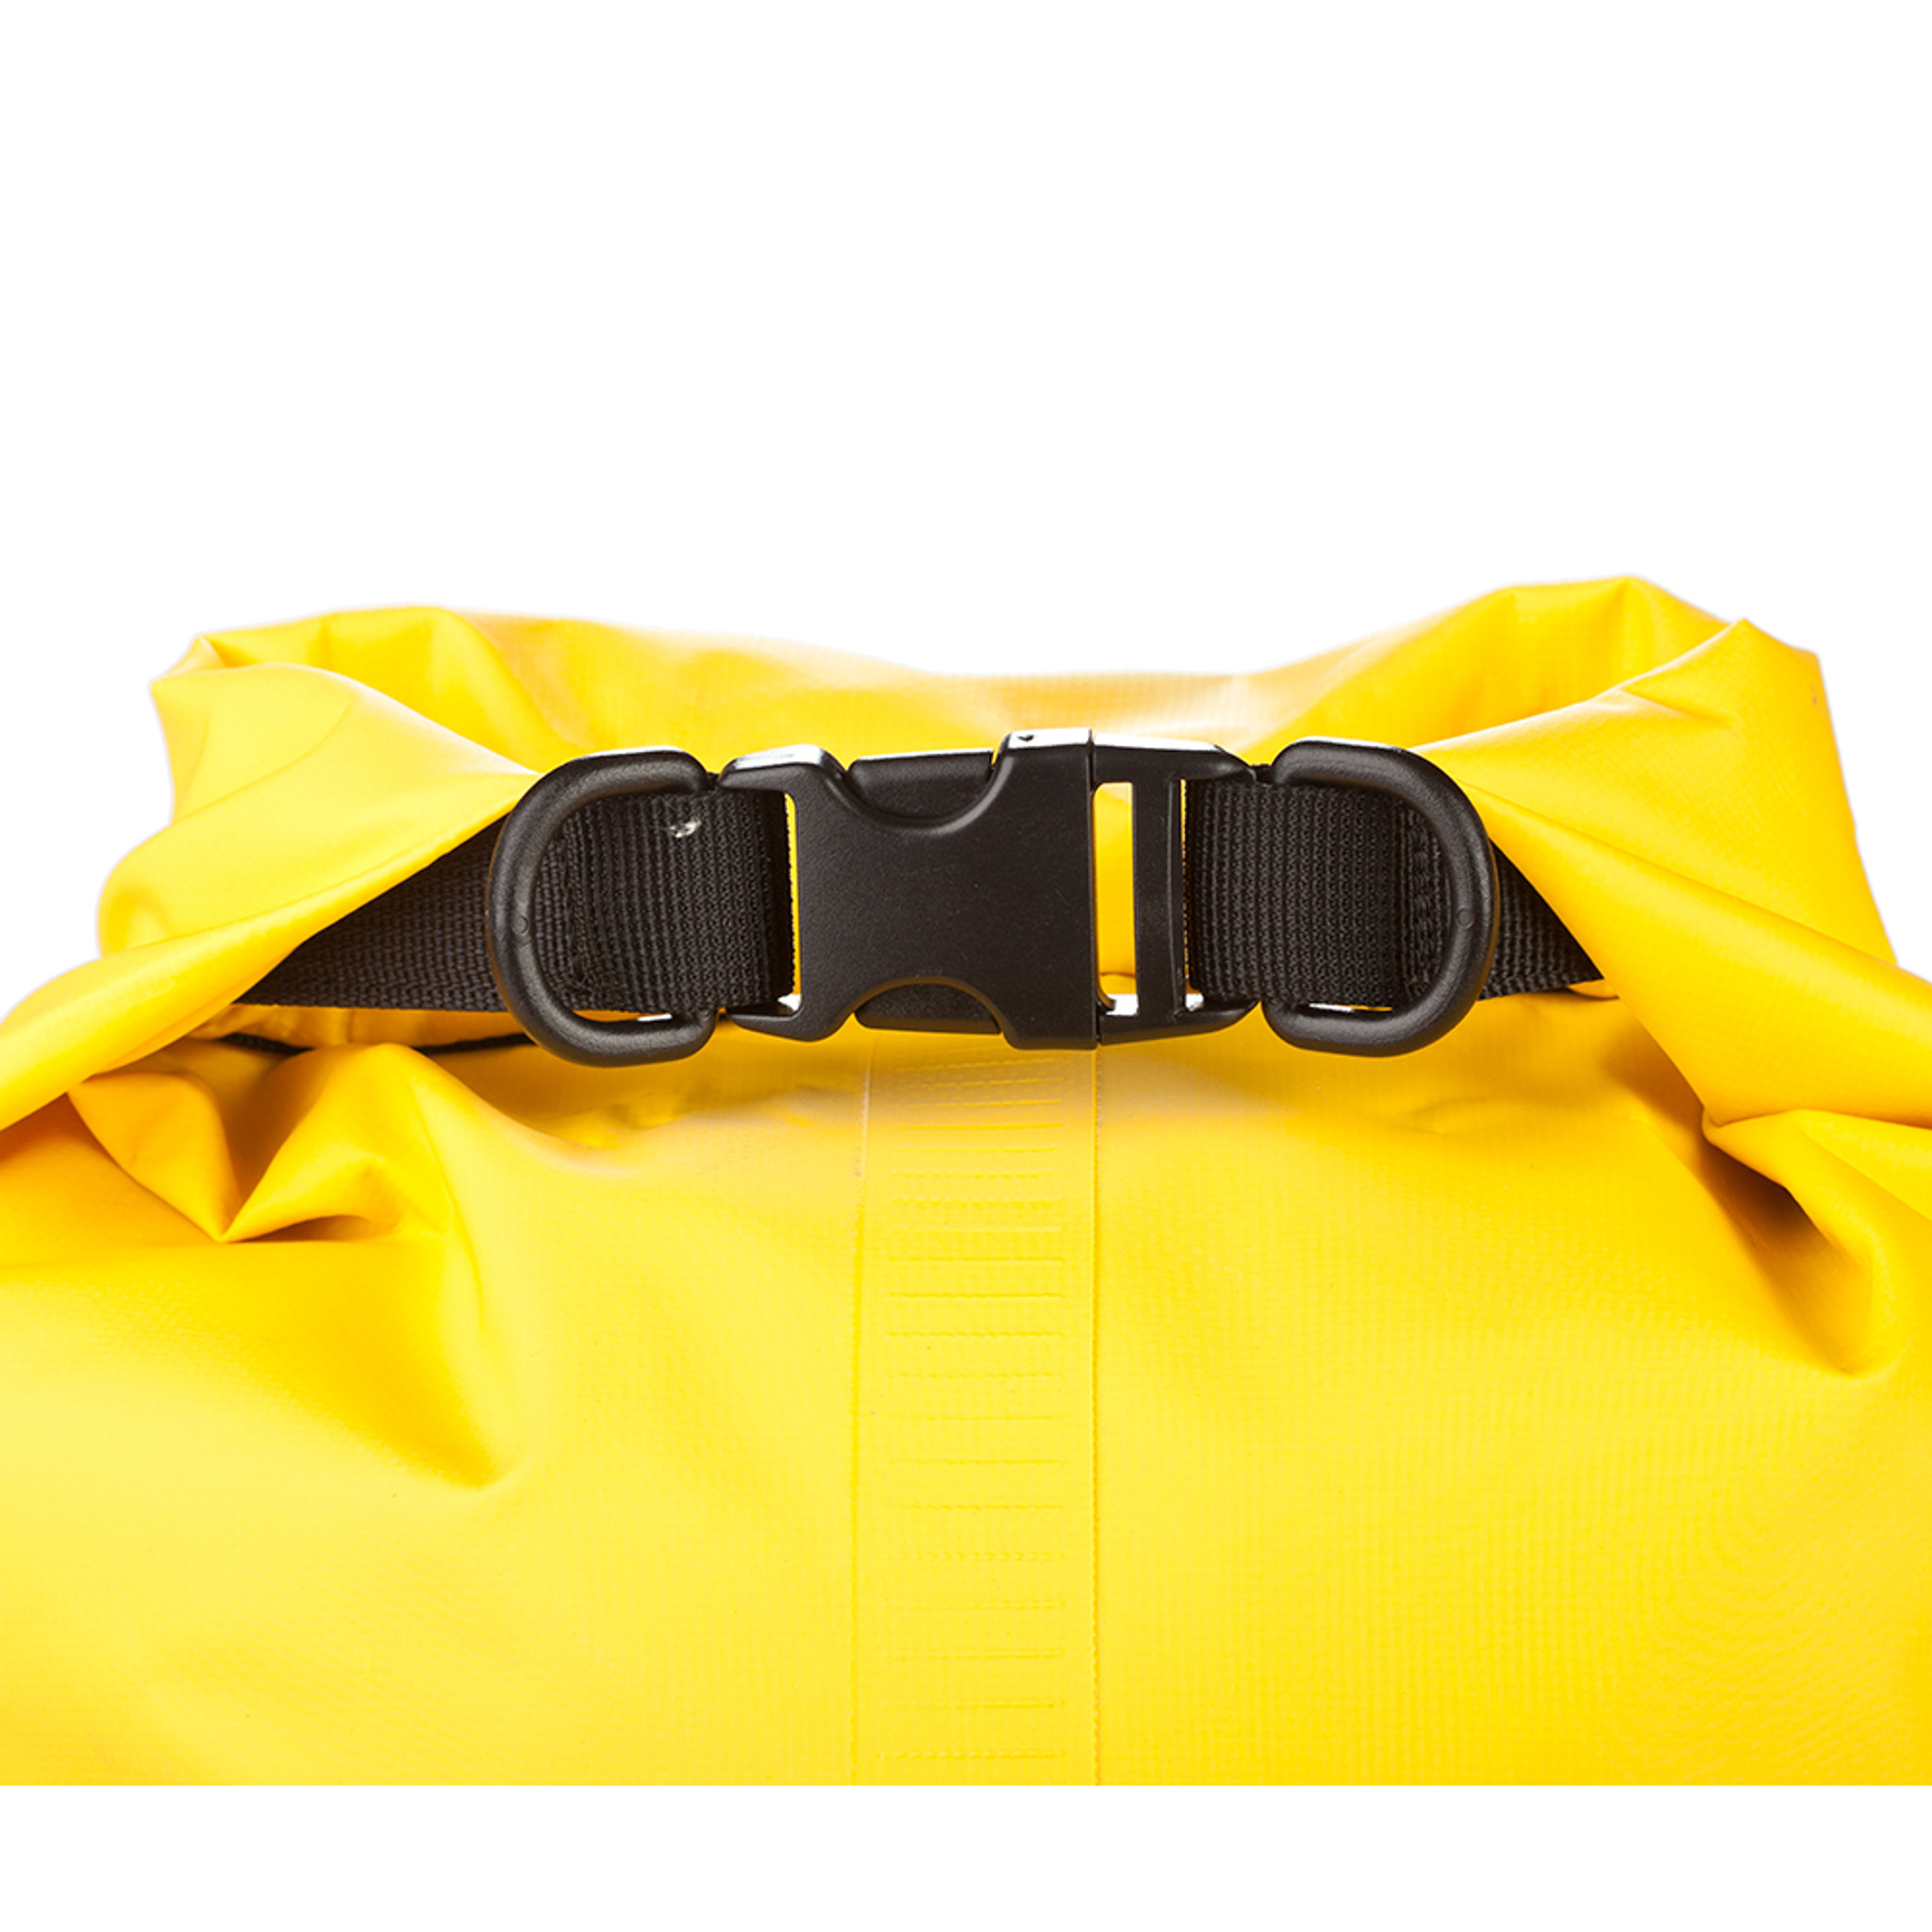 ATTWOOD MARINE 11834-1 ATTWOOD BOATERS DRY STORAGE BOX